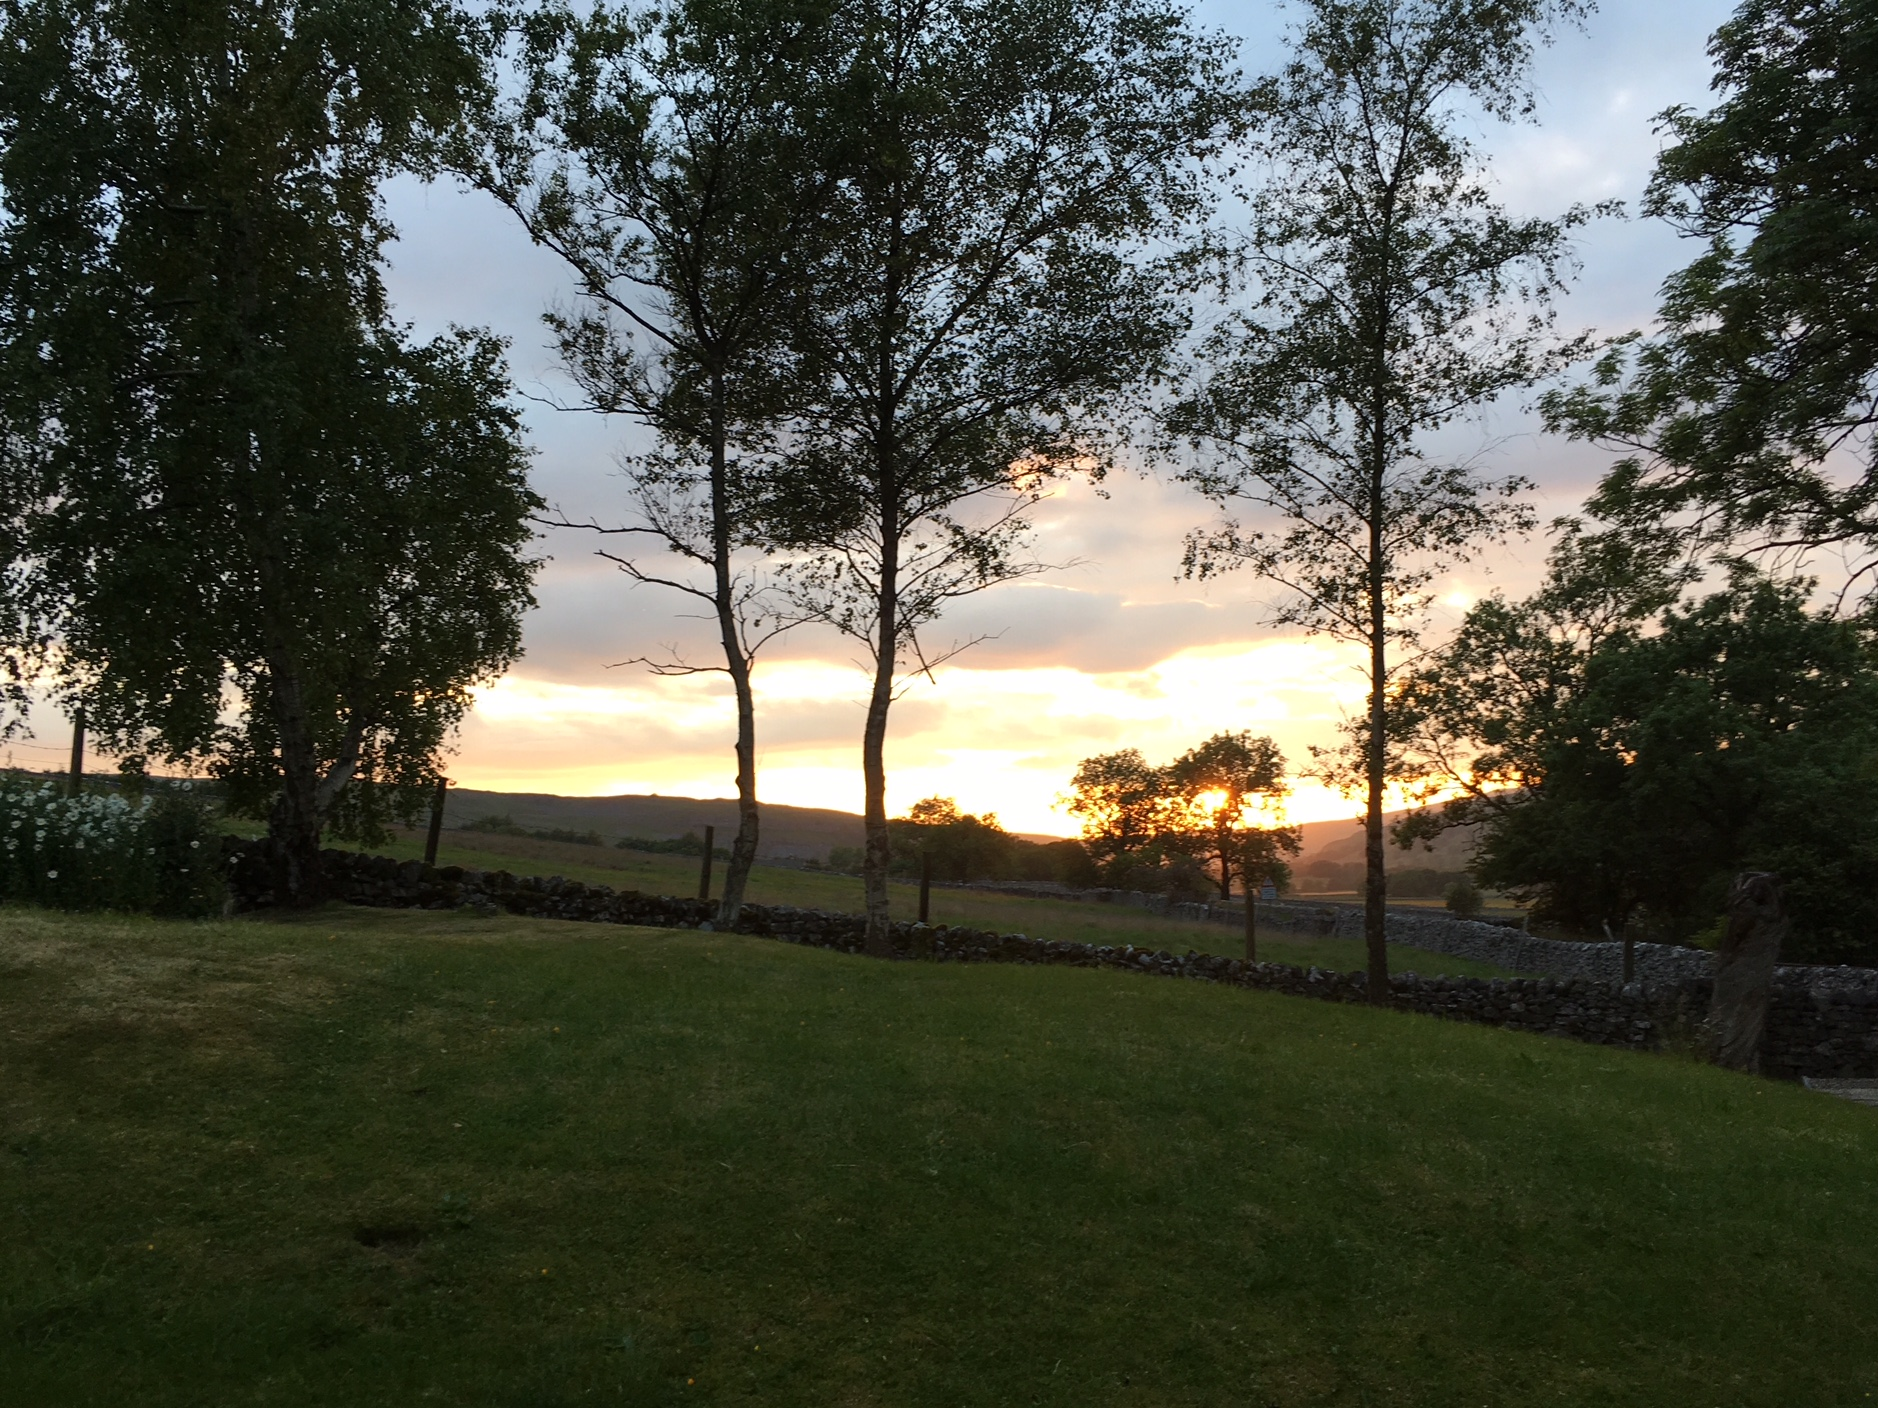 - Mid month we took advantage of a natural break between guests to take a few days away in the Yorkshire Dales. We stayed at the delightful Warren House B&B near Kettlewell - beautiful scenery, generous hosts and very comfortable accommodation. This was the sunset from our suite...